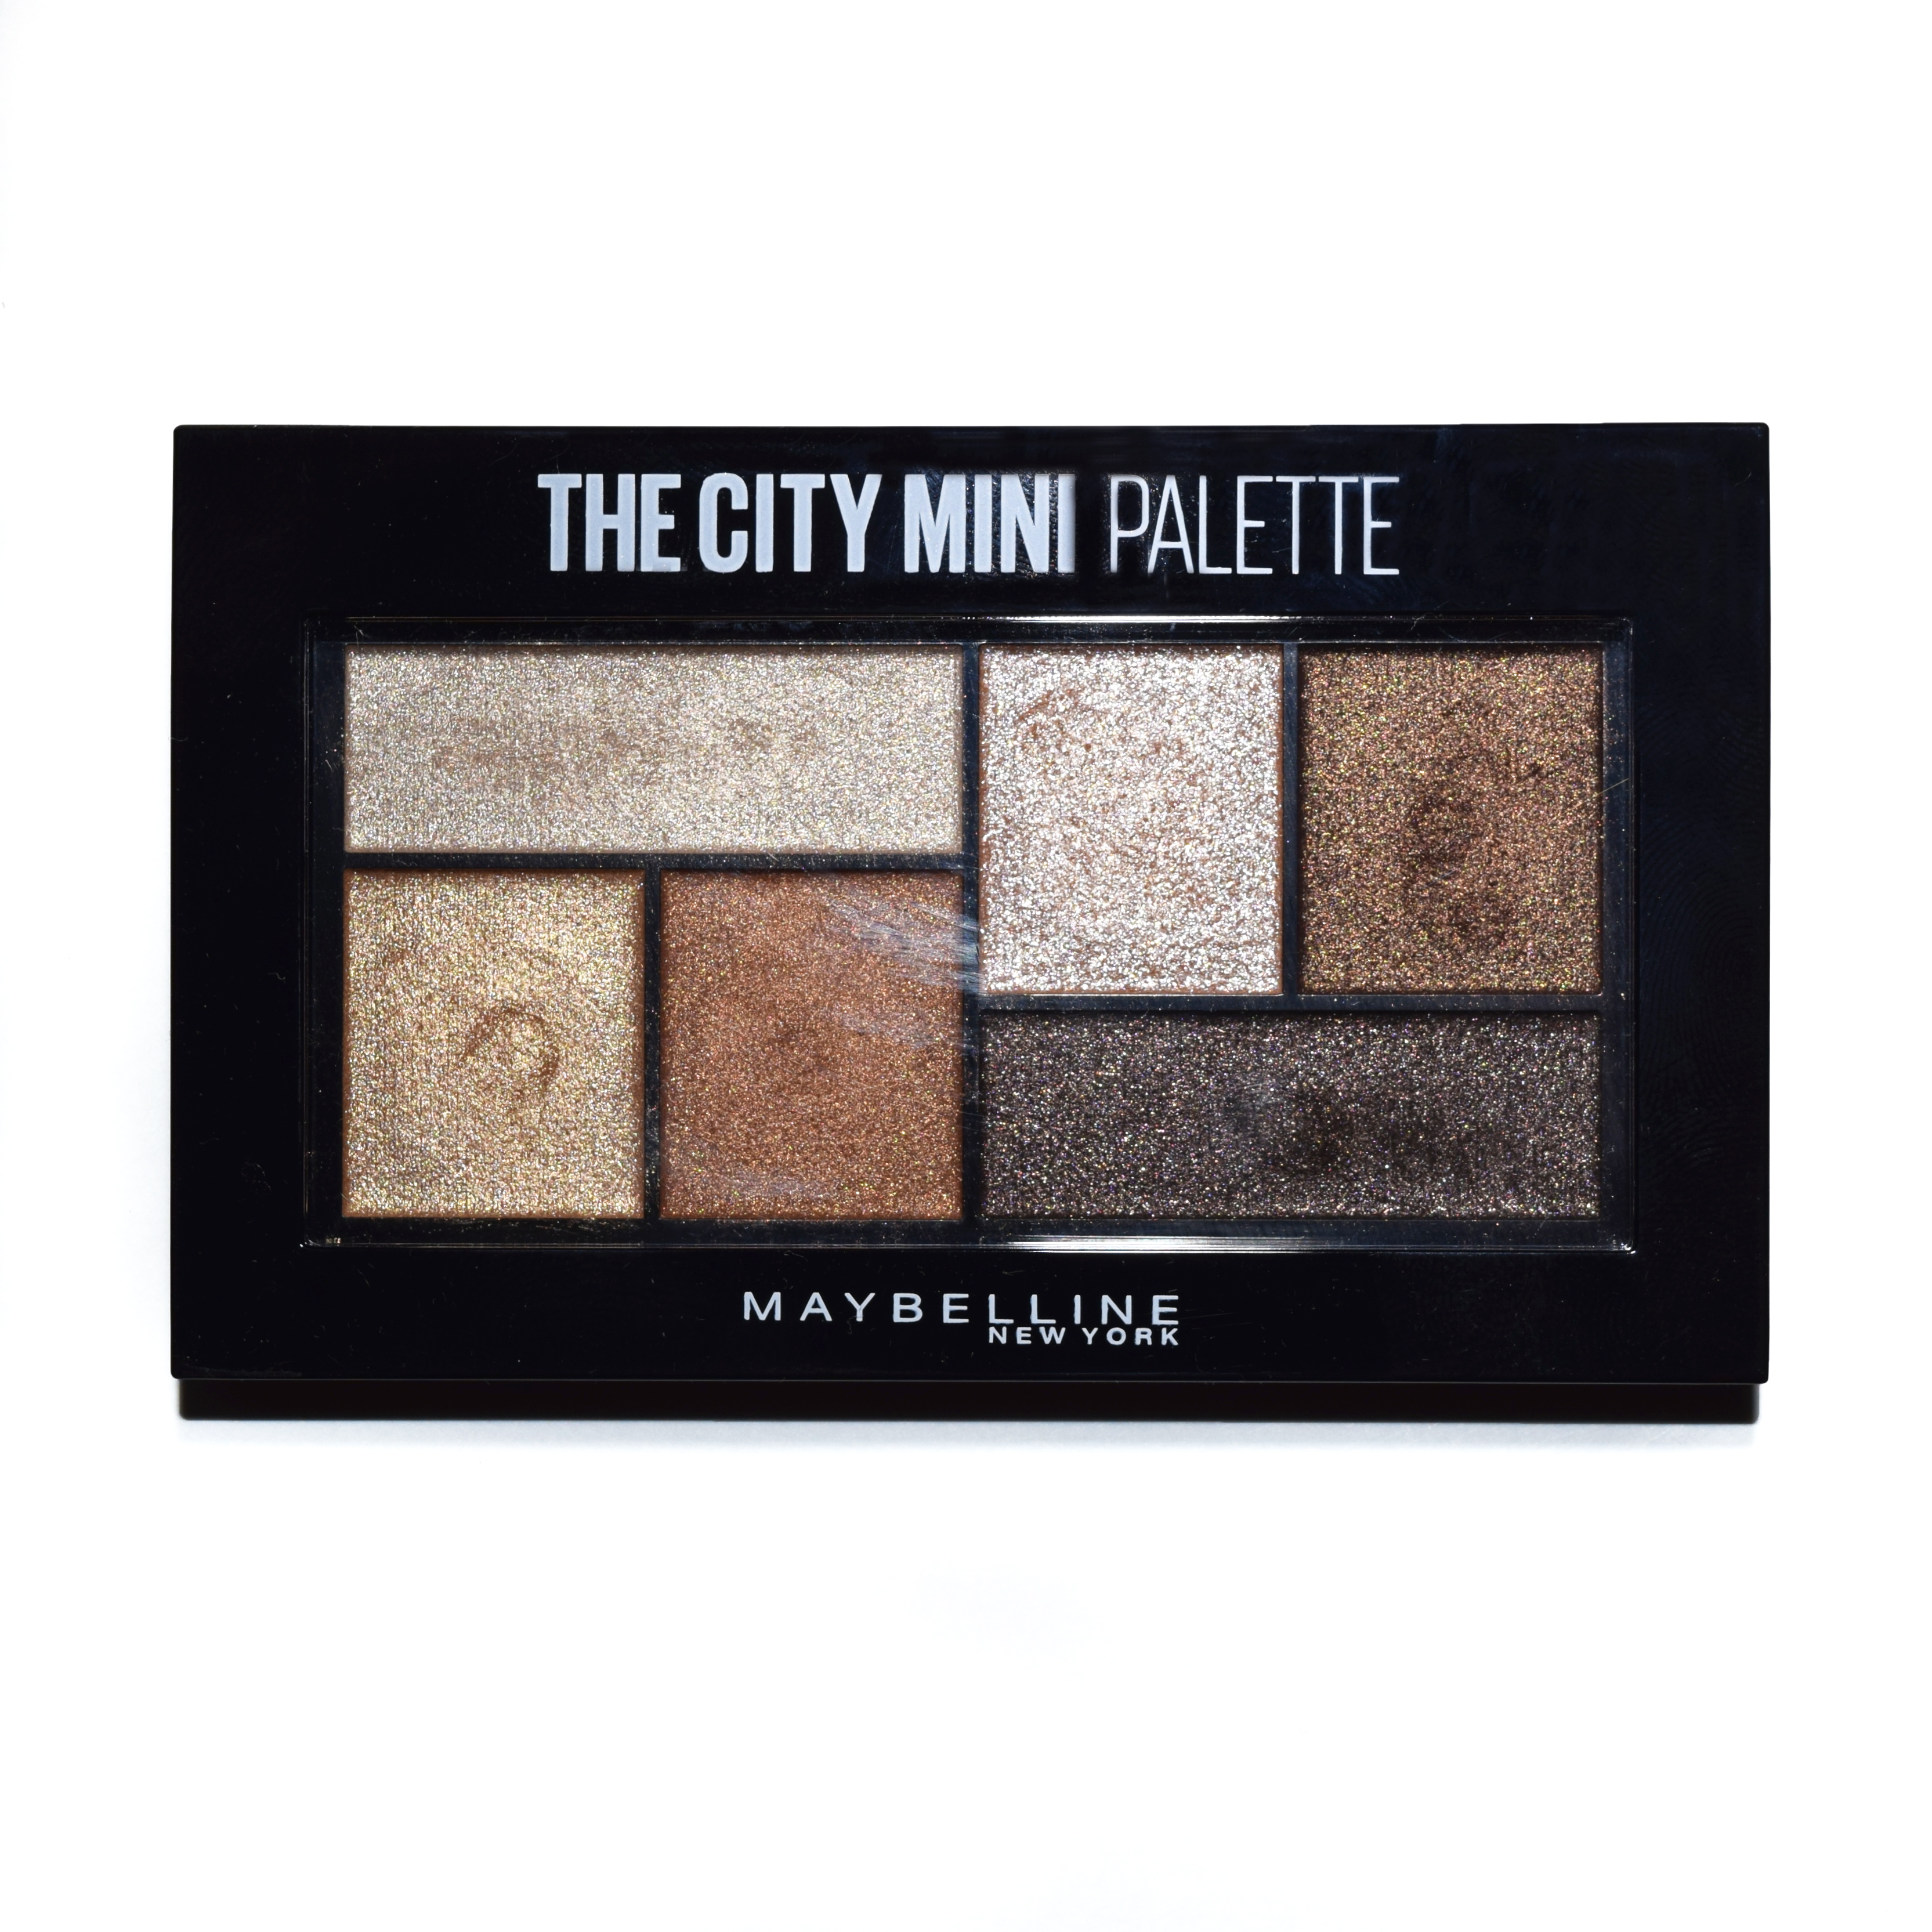 Maybelline The City Mini Palette Review